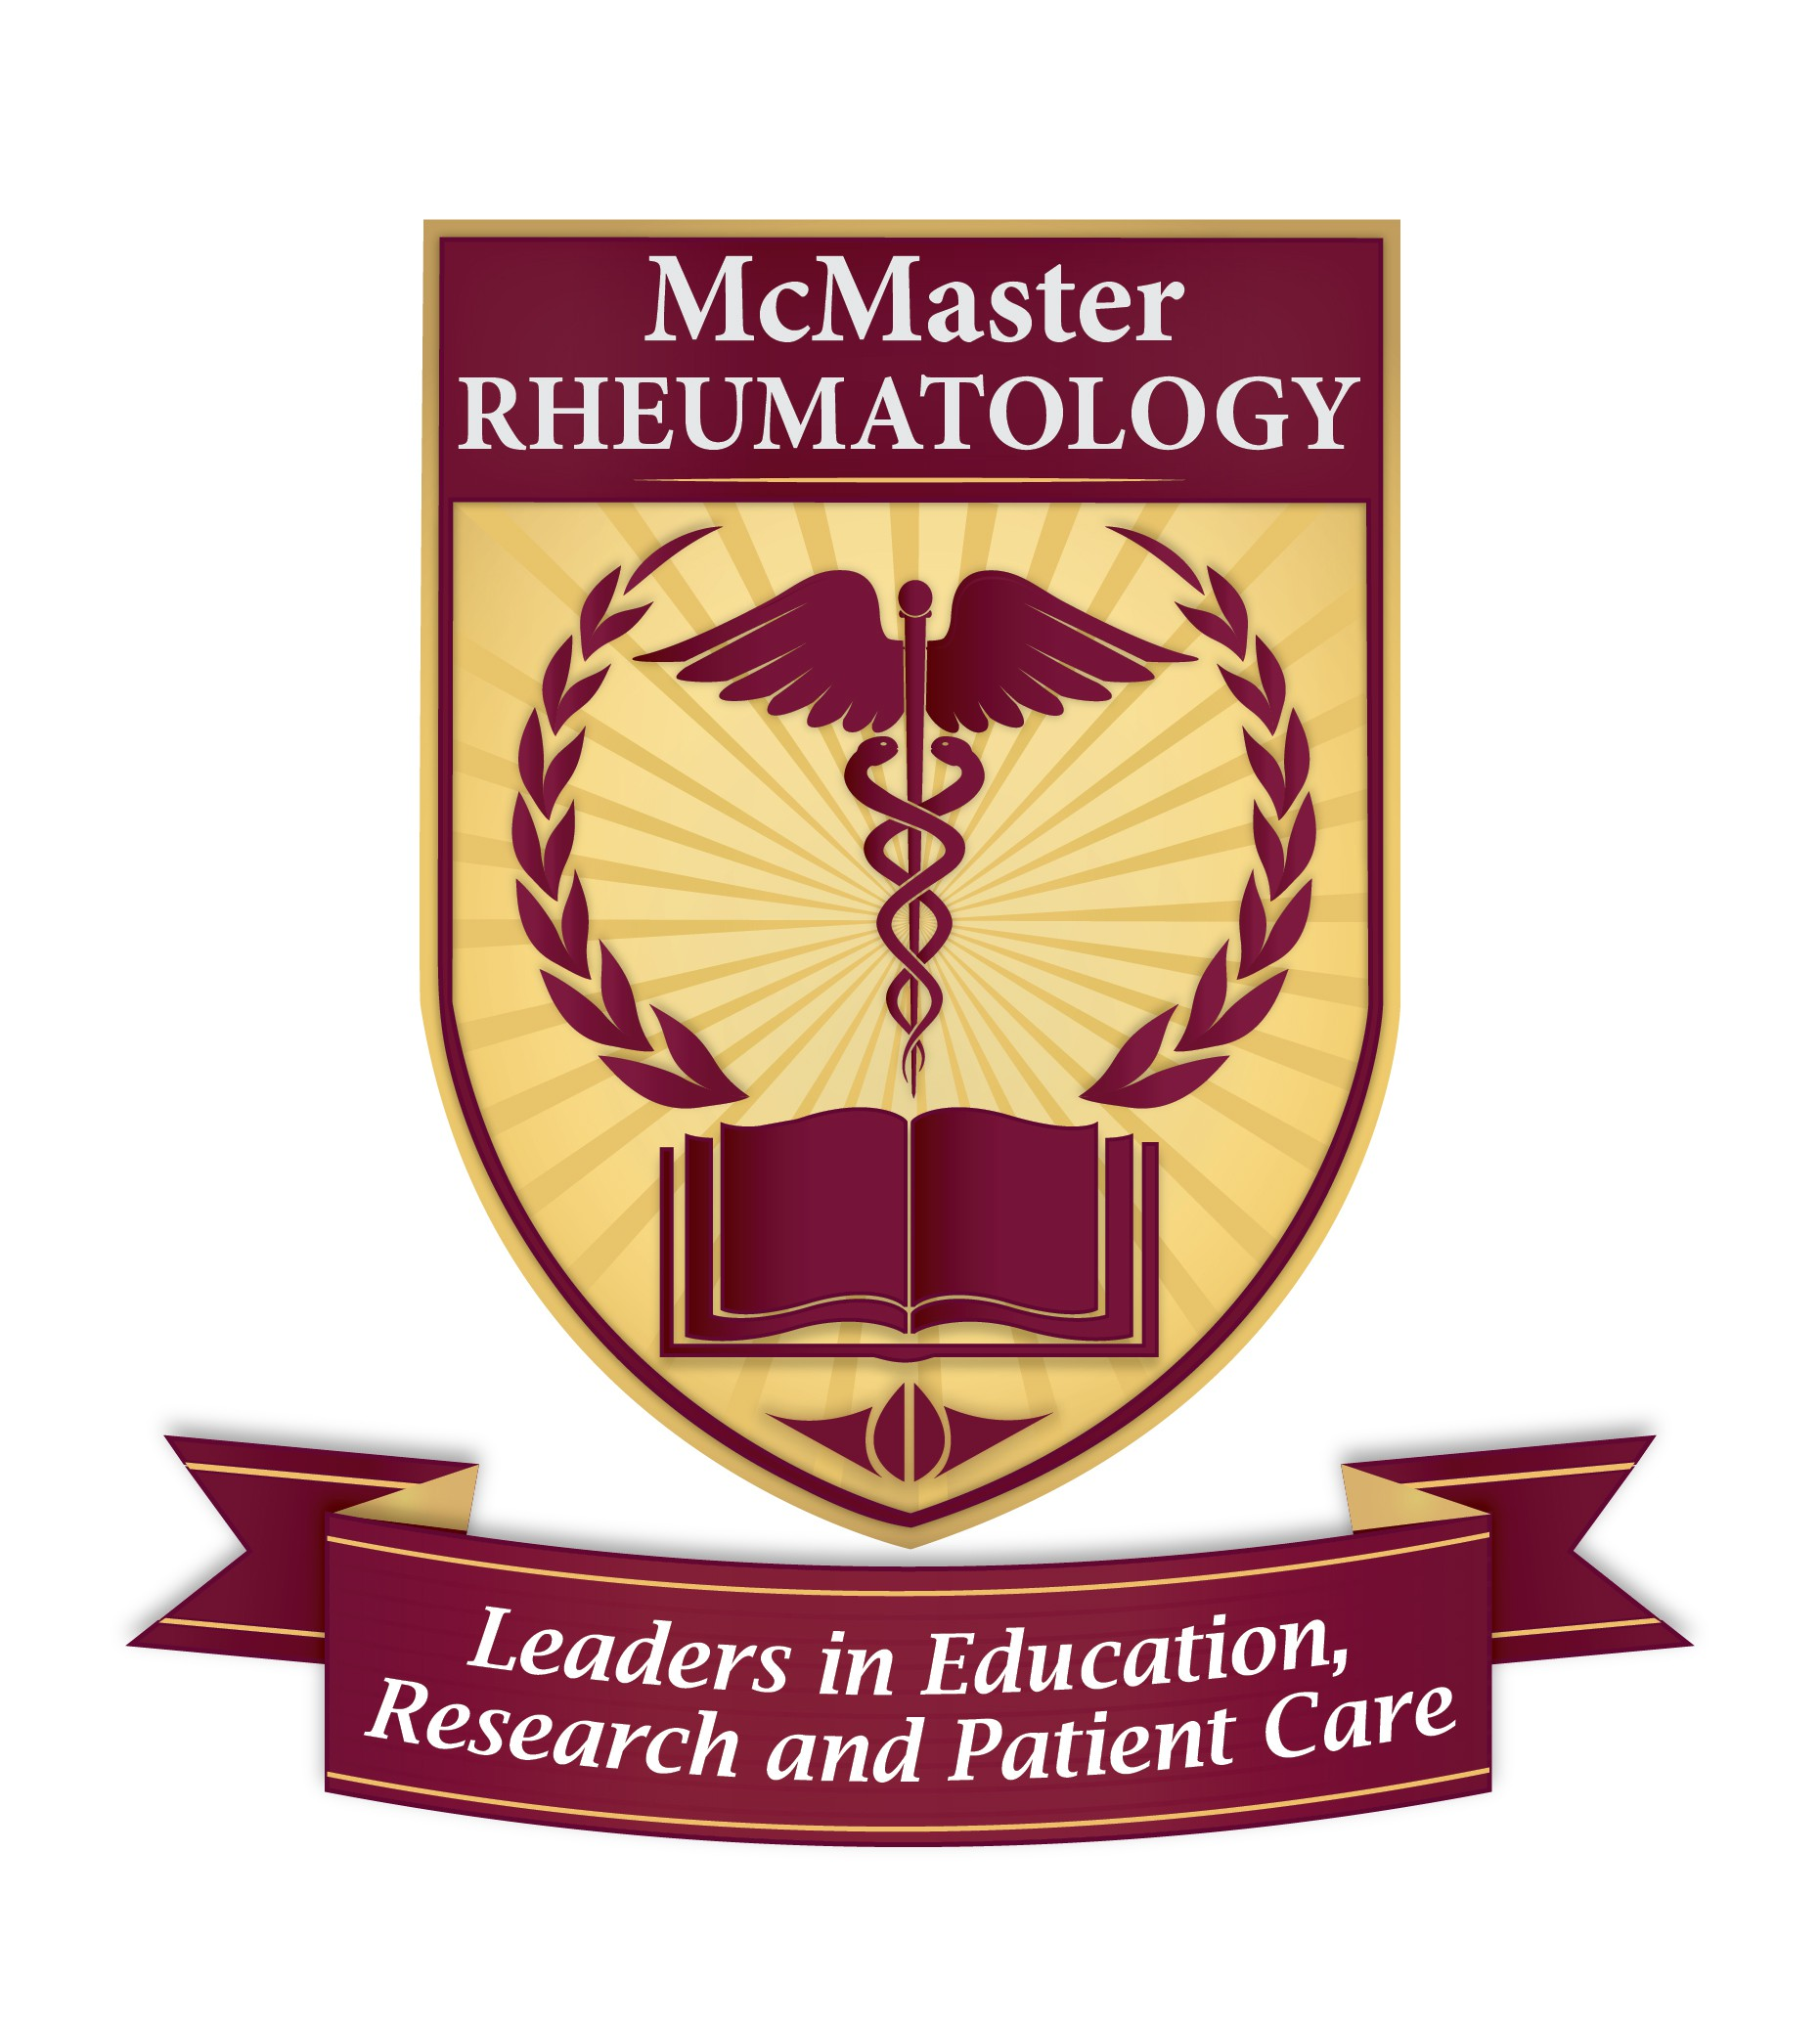 Professional logo for a university division.  Leaders in education, research and patient care.